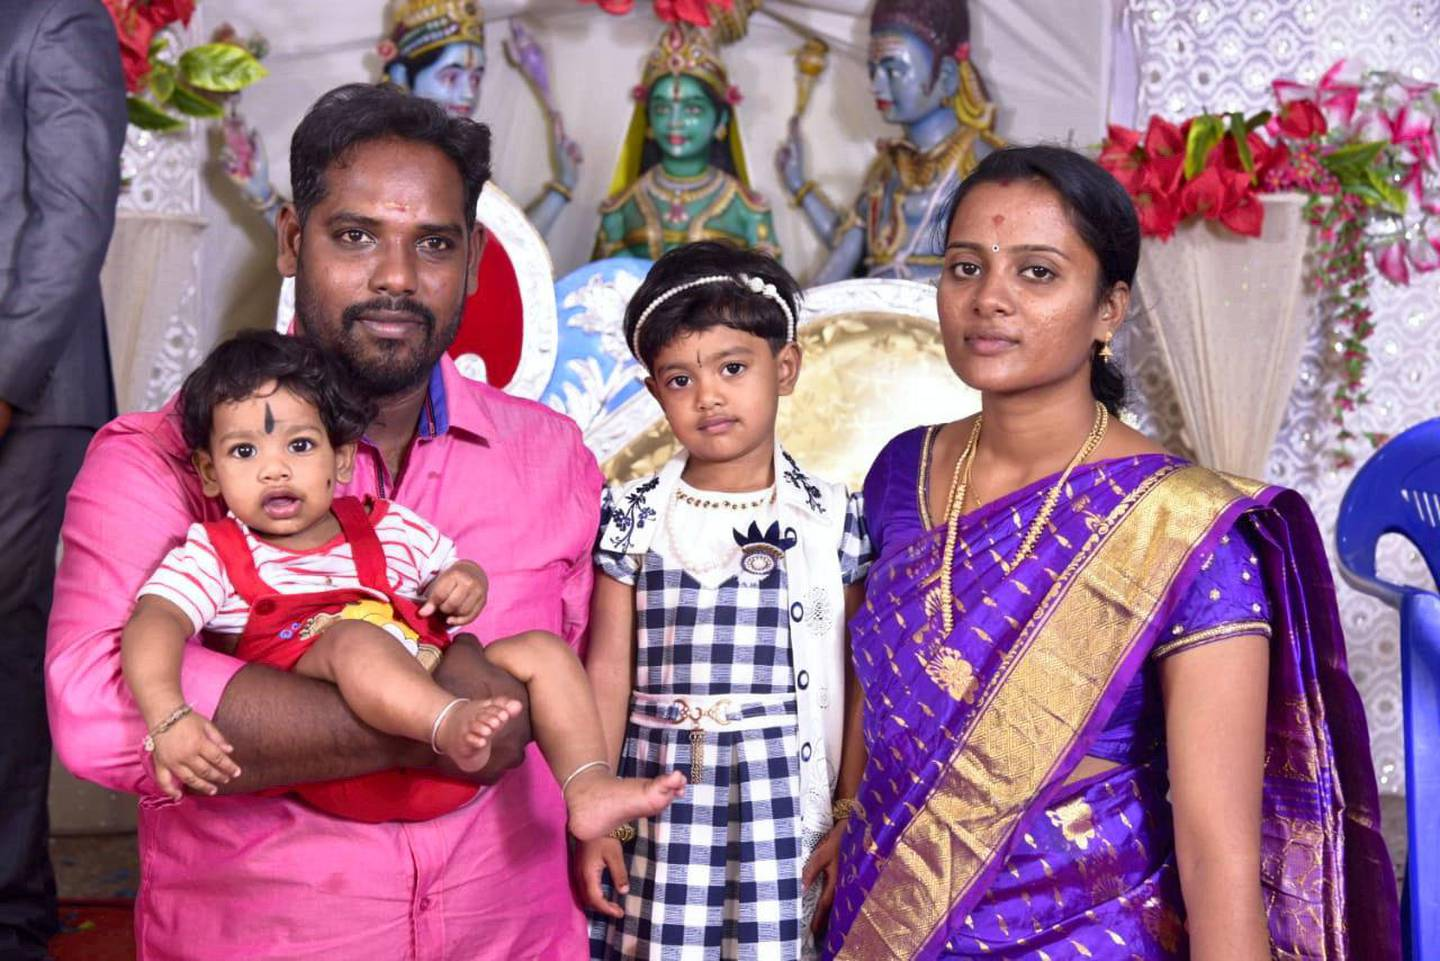 Mohanraj Thanigachalam with his family in Cudallore, a town in southern Tamil Nadu state. He is one of 14 Indian sailors released after 10 months in captivity by Houthi rebels. Courtesy: Mohanraj Thanigachalam